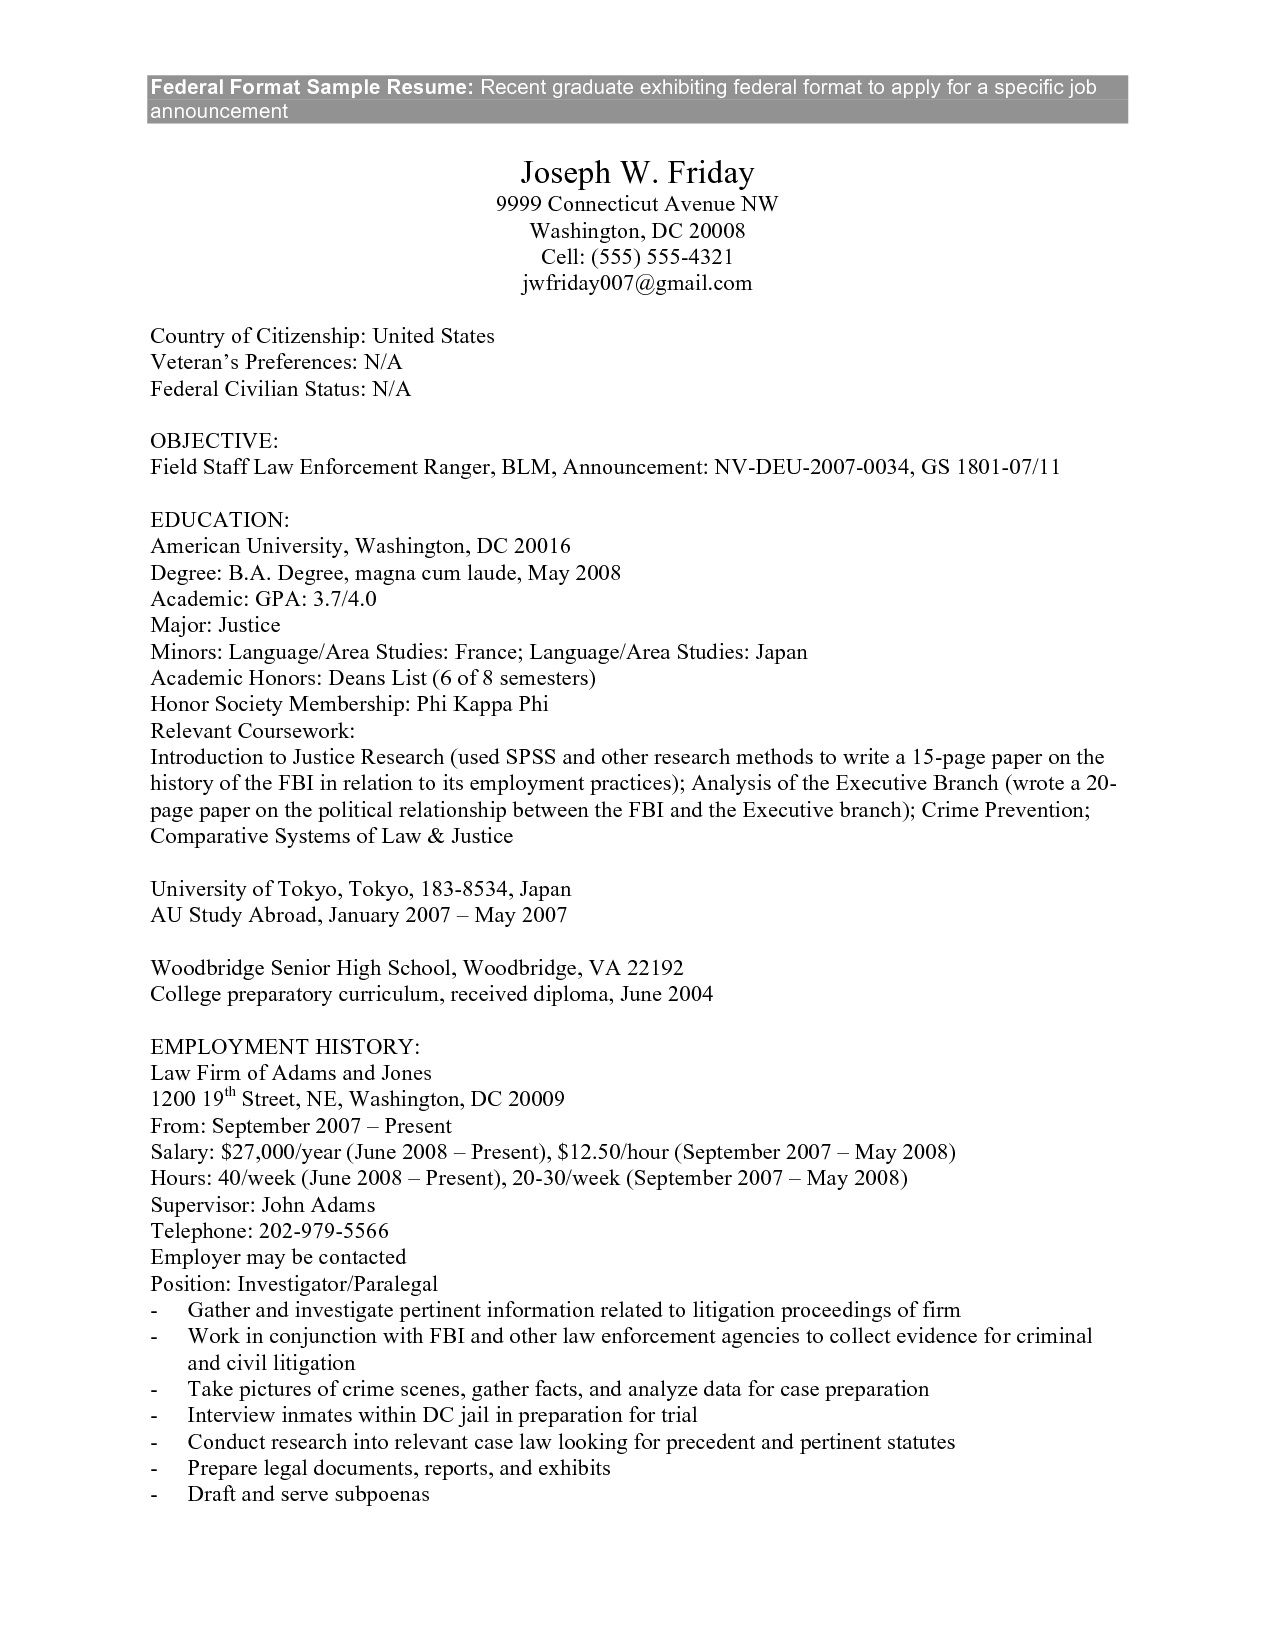 job resume builder federal government resume example federal government resume example are examples provide reference